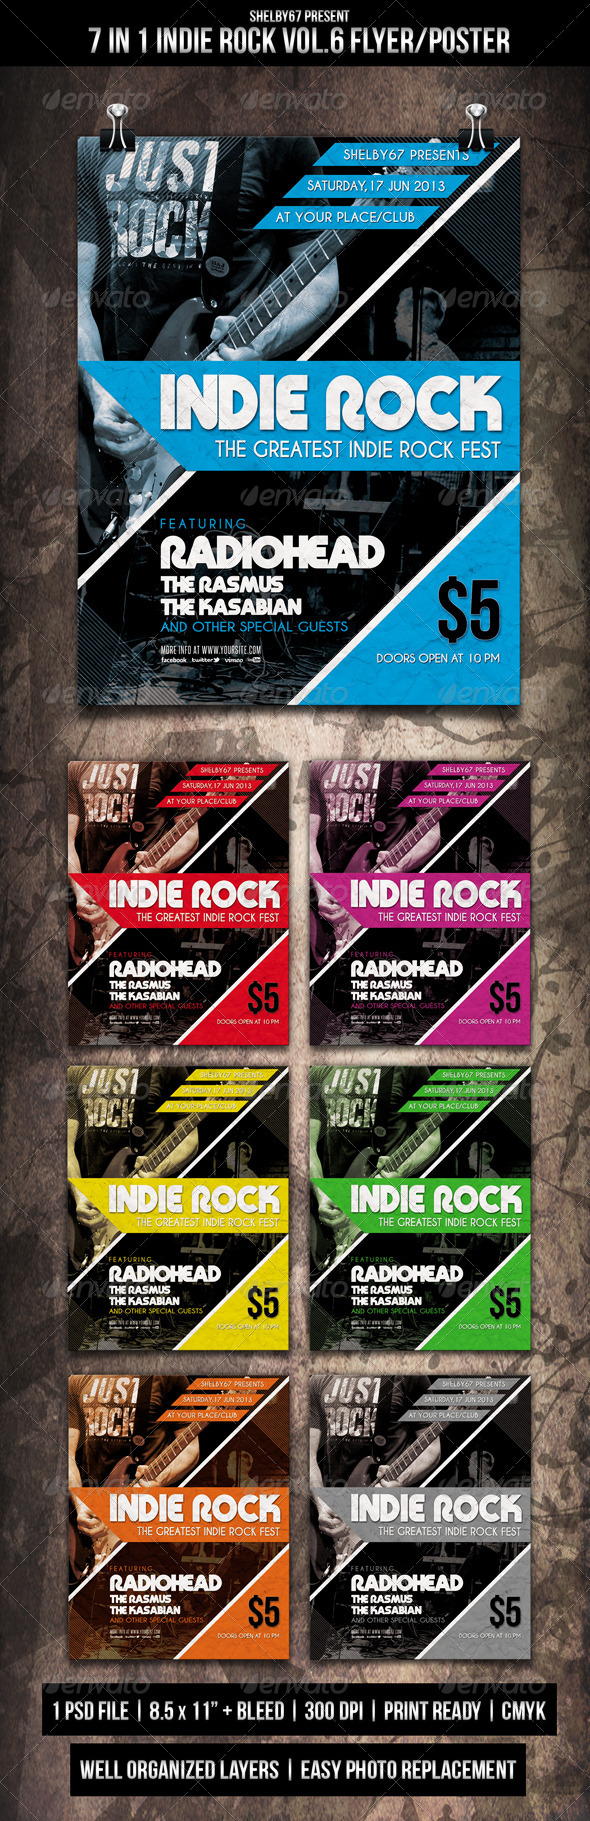 Indie Rock Flyer Poster Vol.6